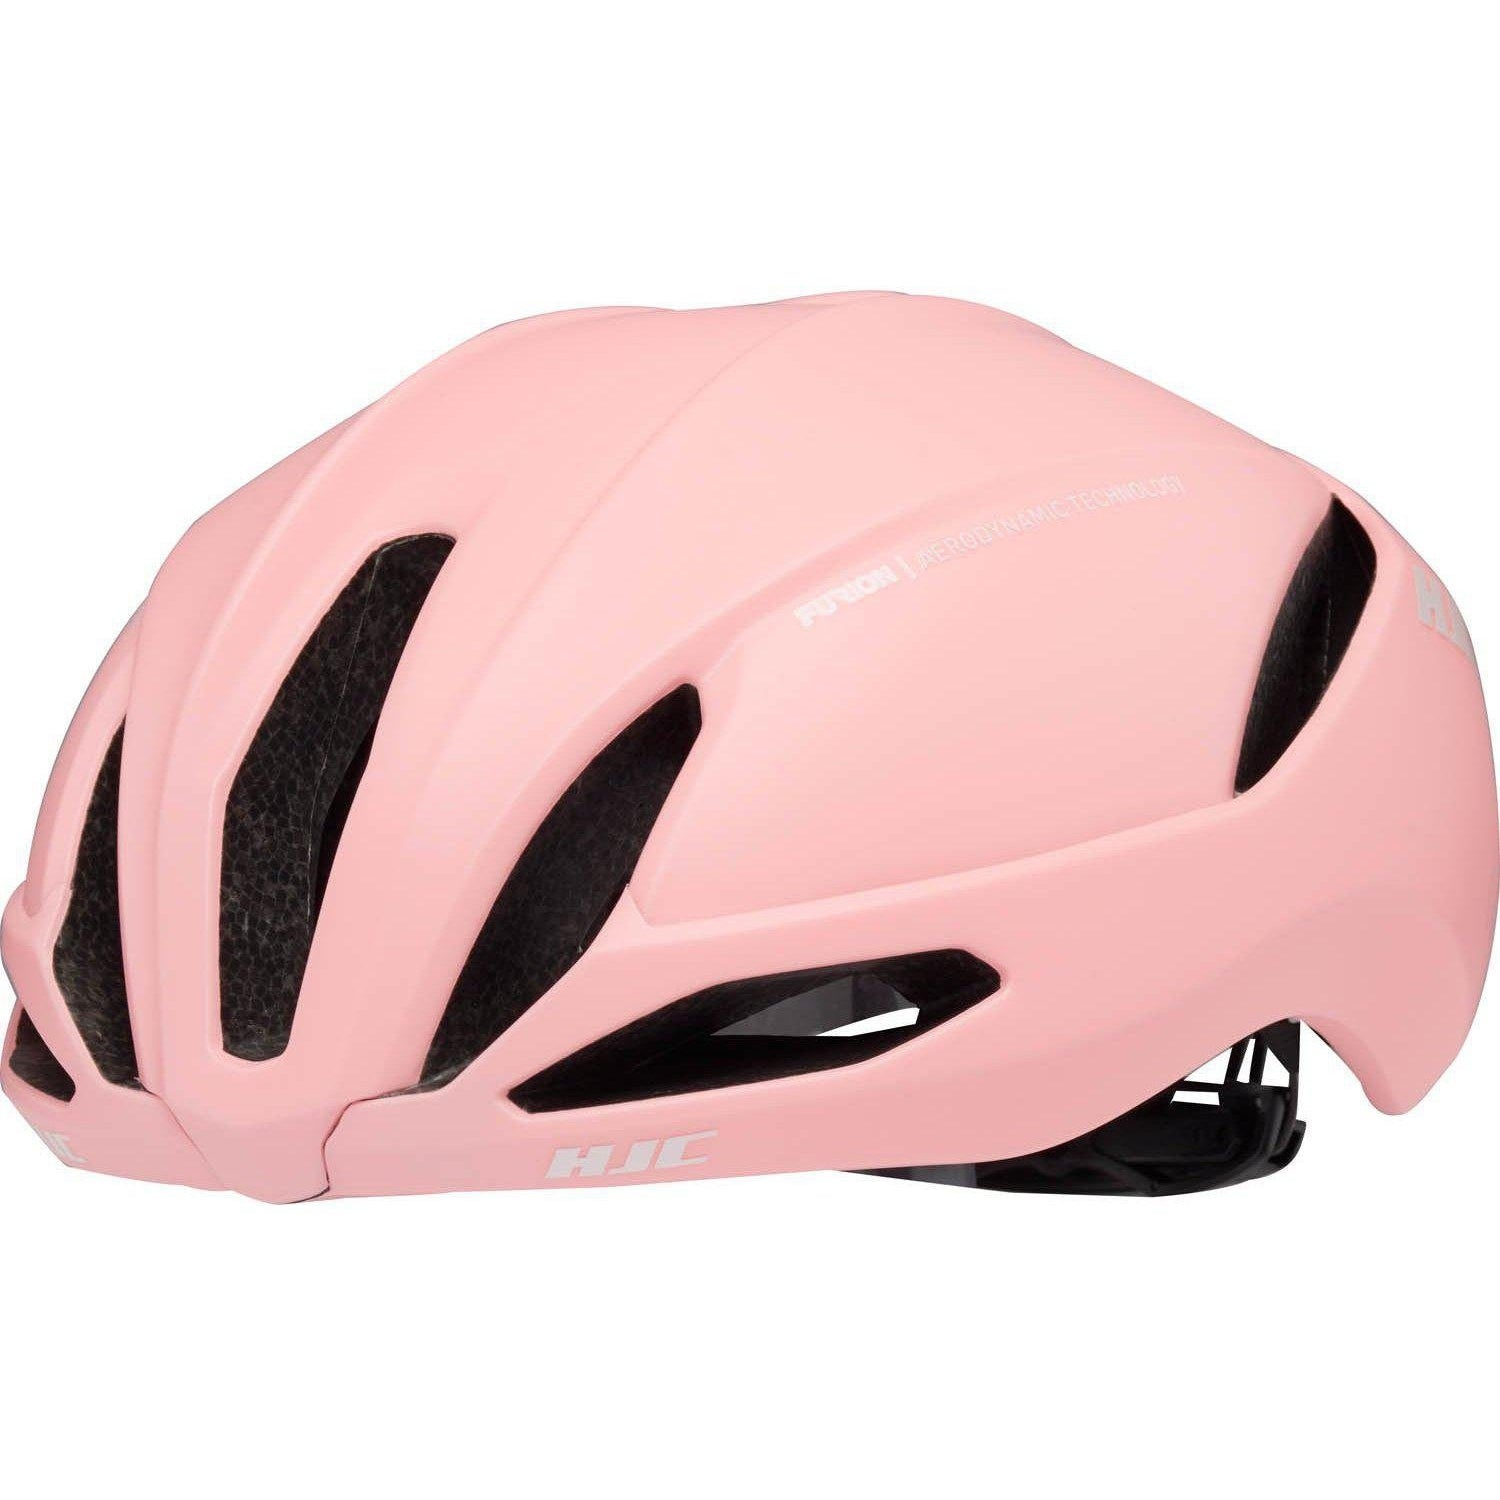 HJC-HJC Furion 2.0 Road Cycling Helmet-Pink-S-HJC81210801-saddleback-elite-performance-cycling